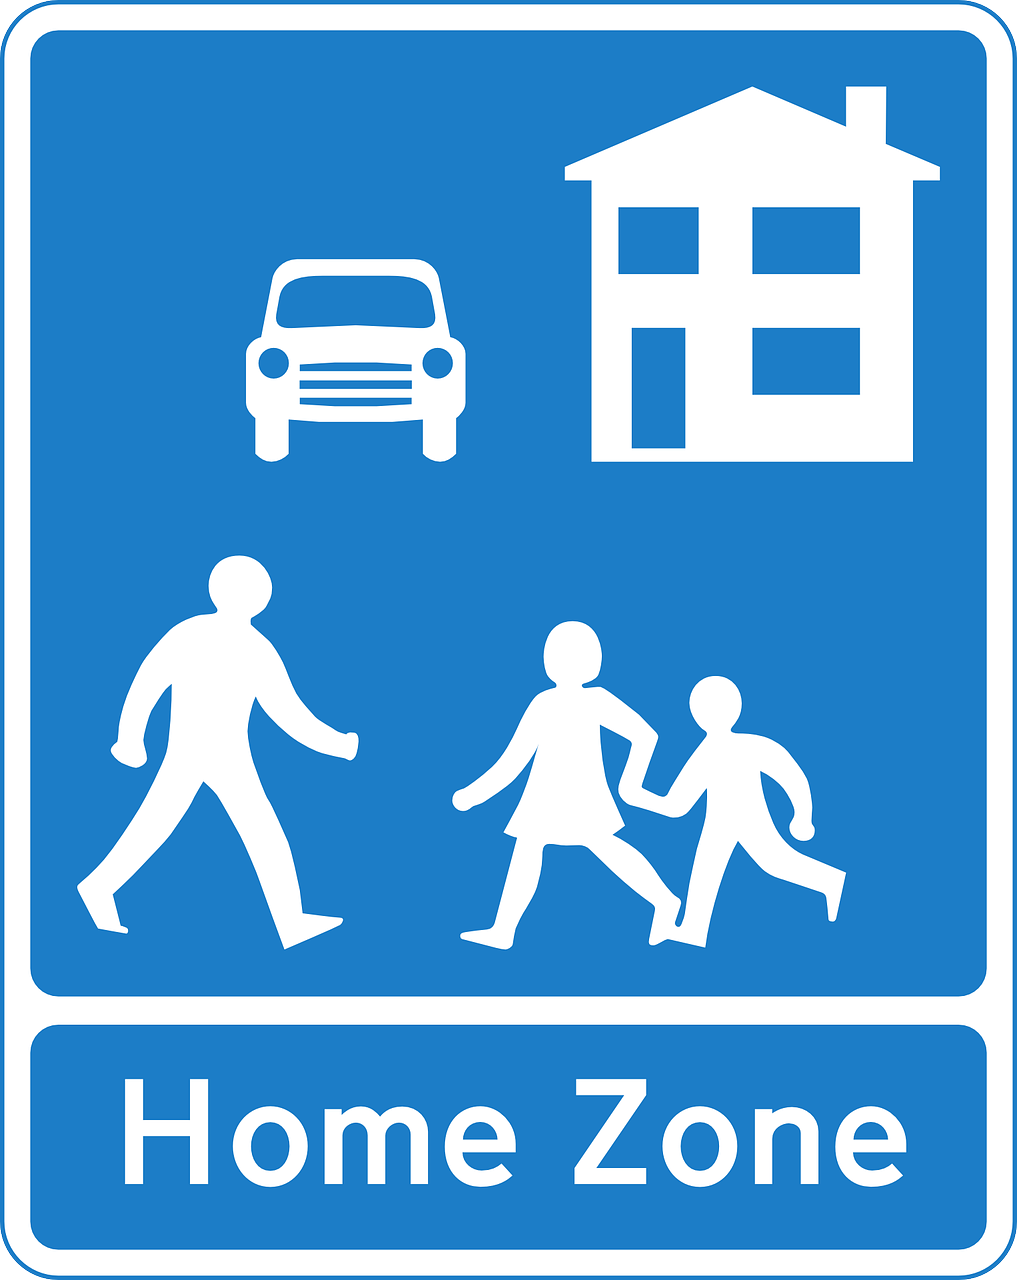 home,road,information,warning,zone,free vector graphics,free pictures, free photos, free images, royalty free, free illustrations, public domain